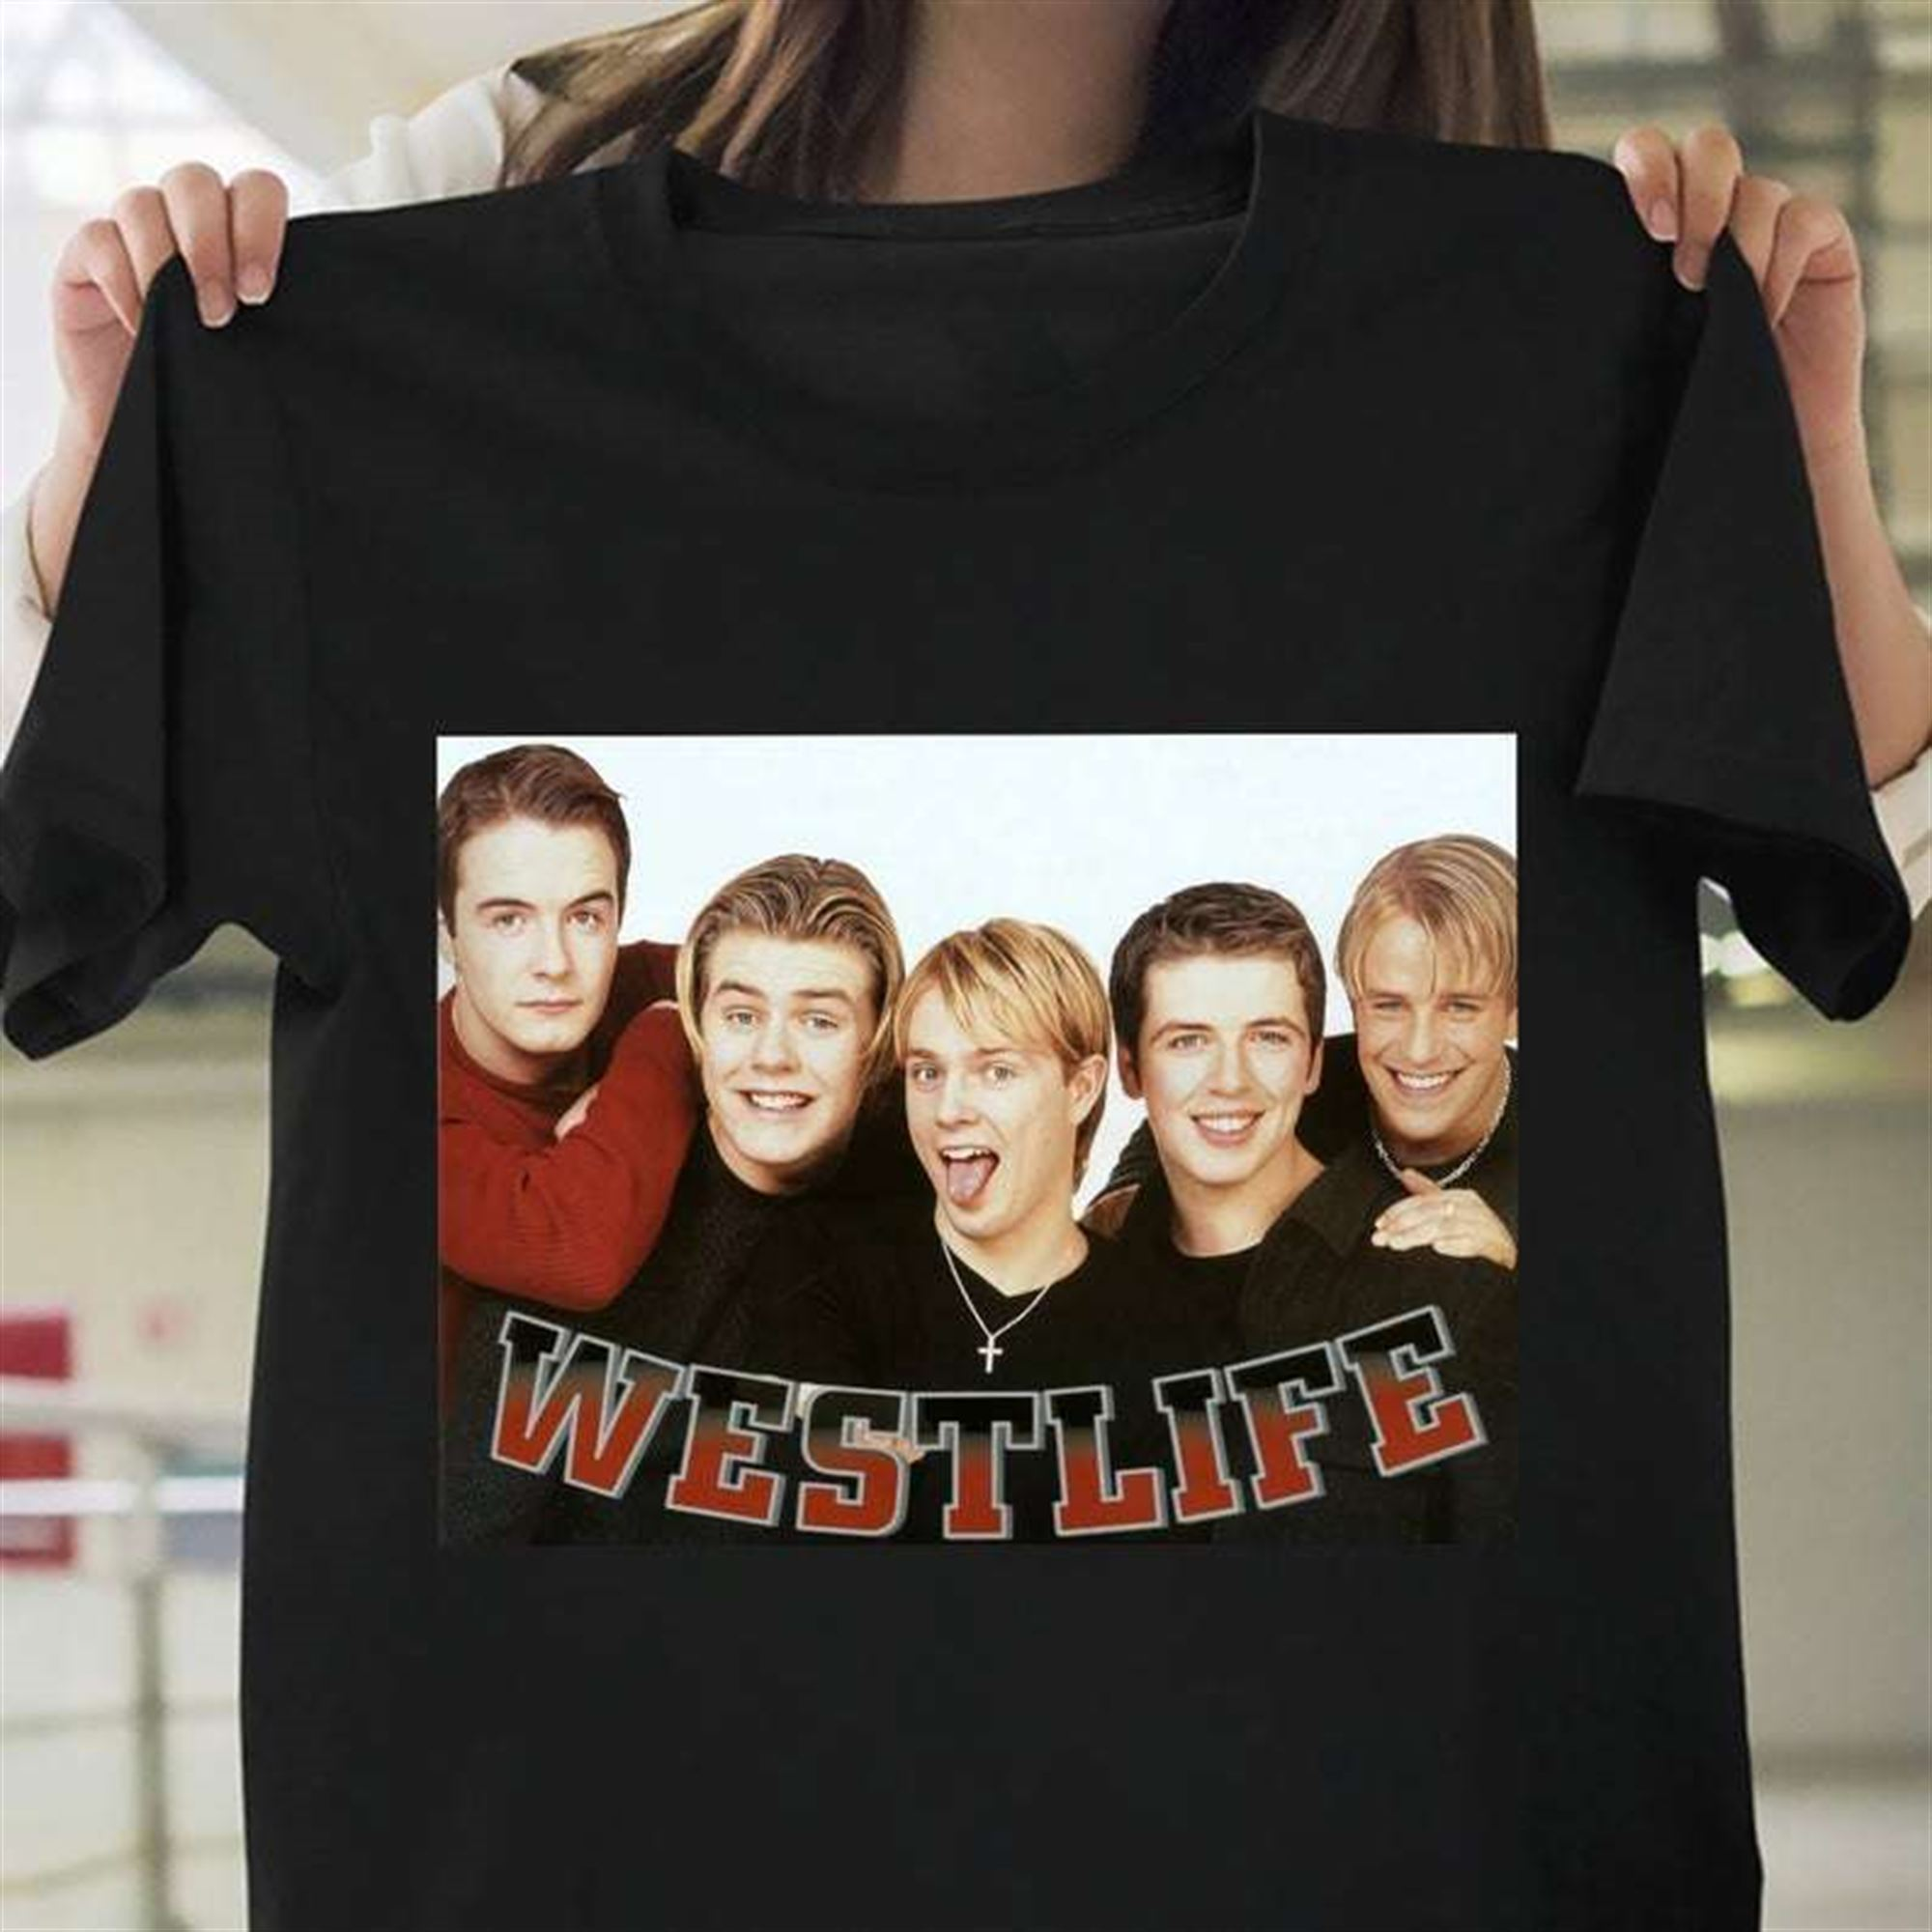 Westlife T-shirt Plus Size Up To 5x